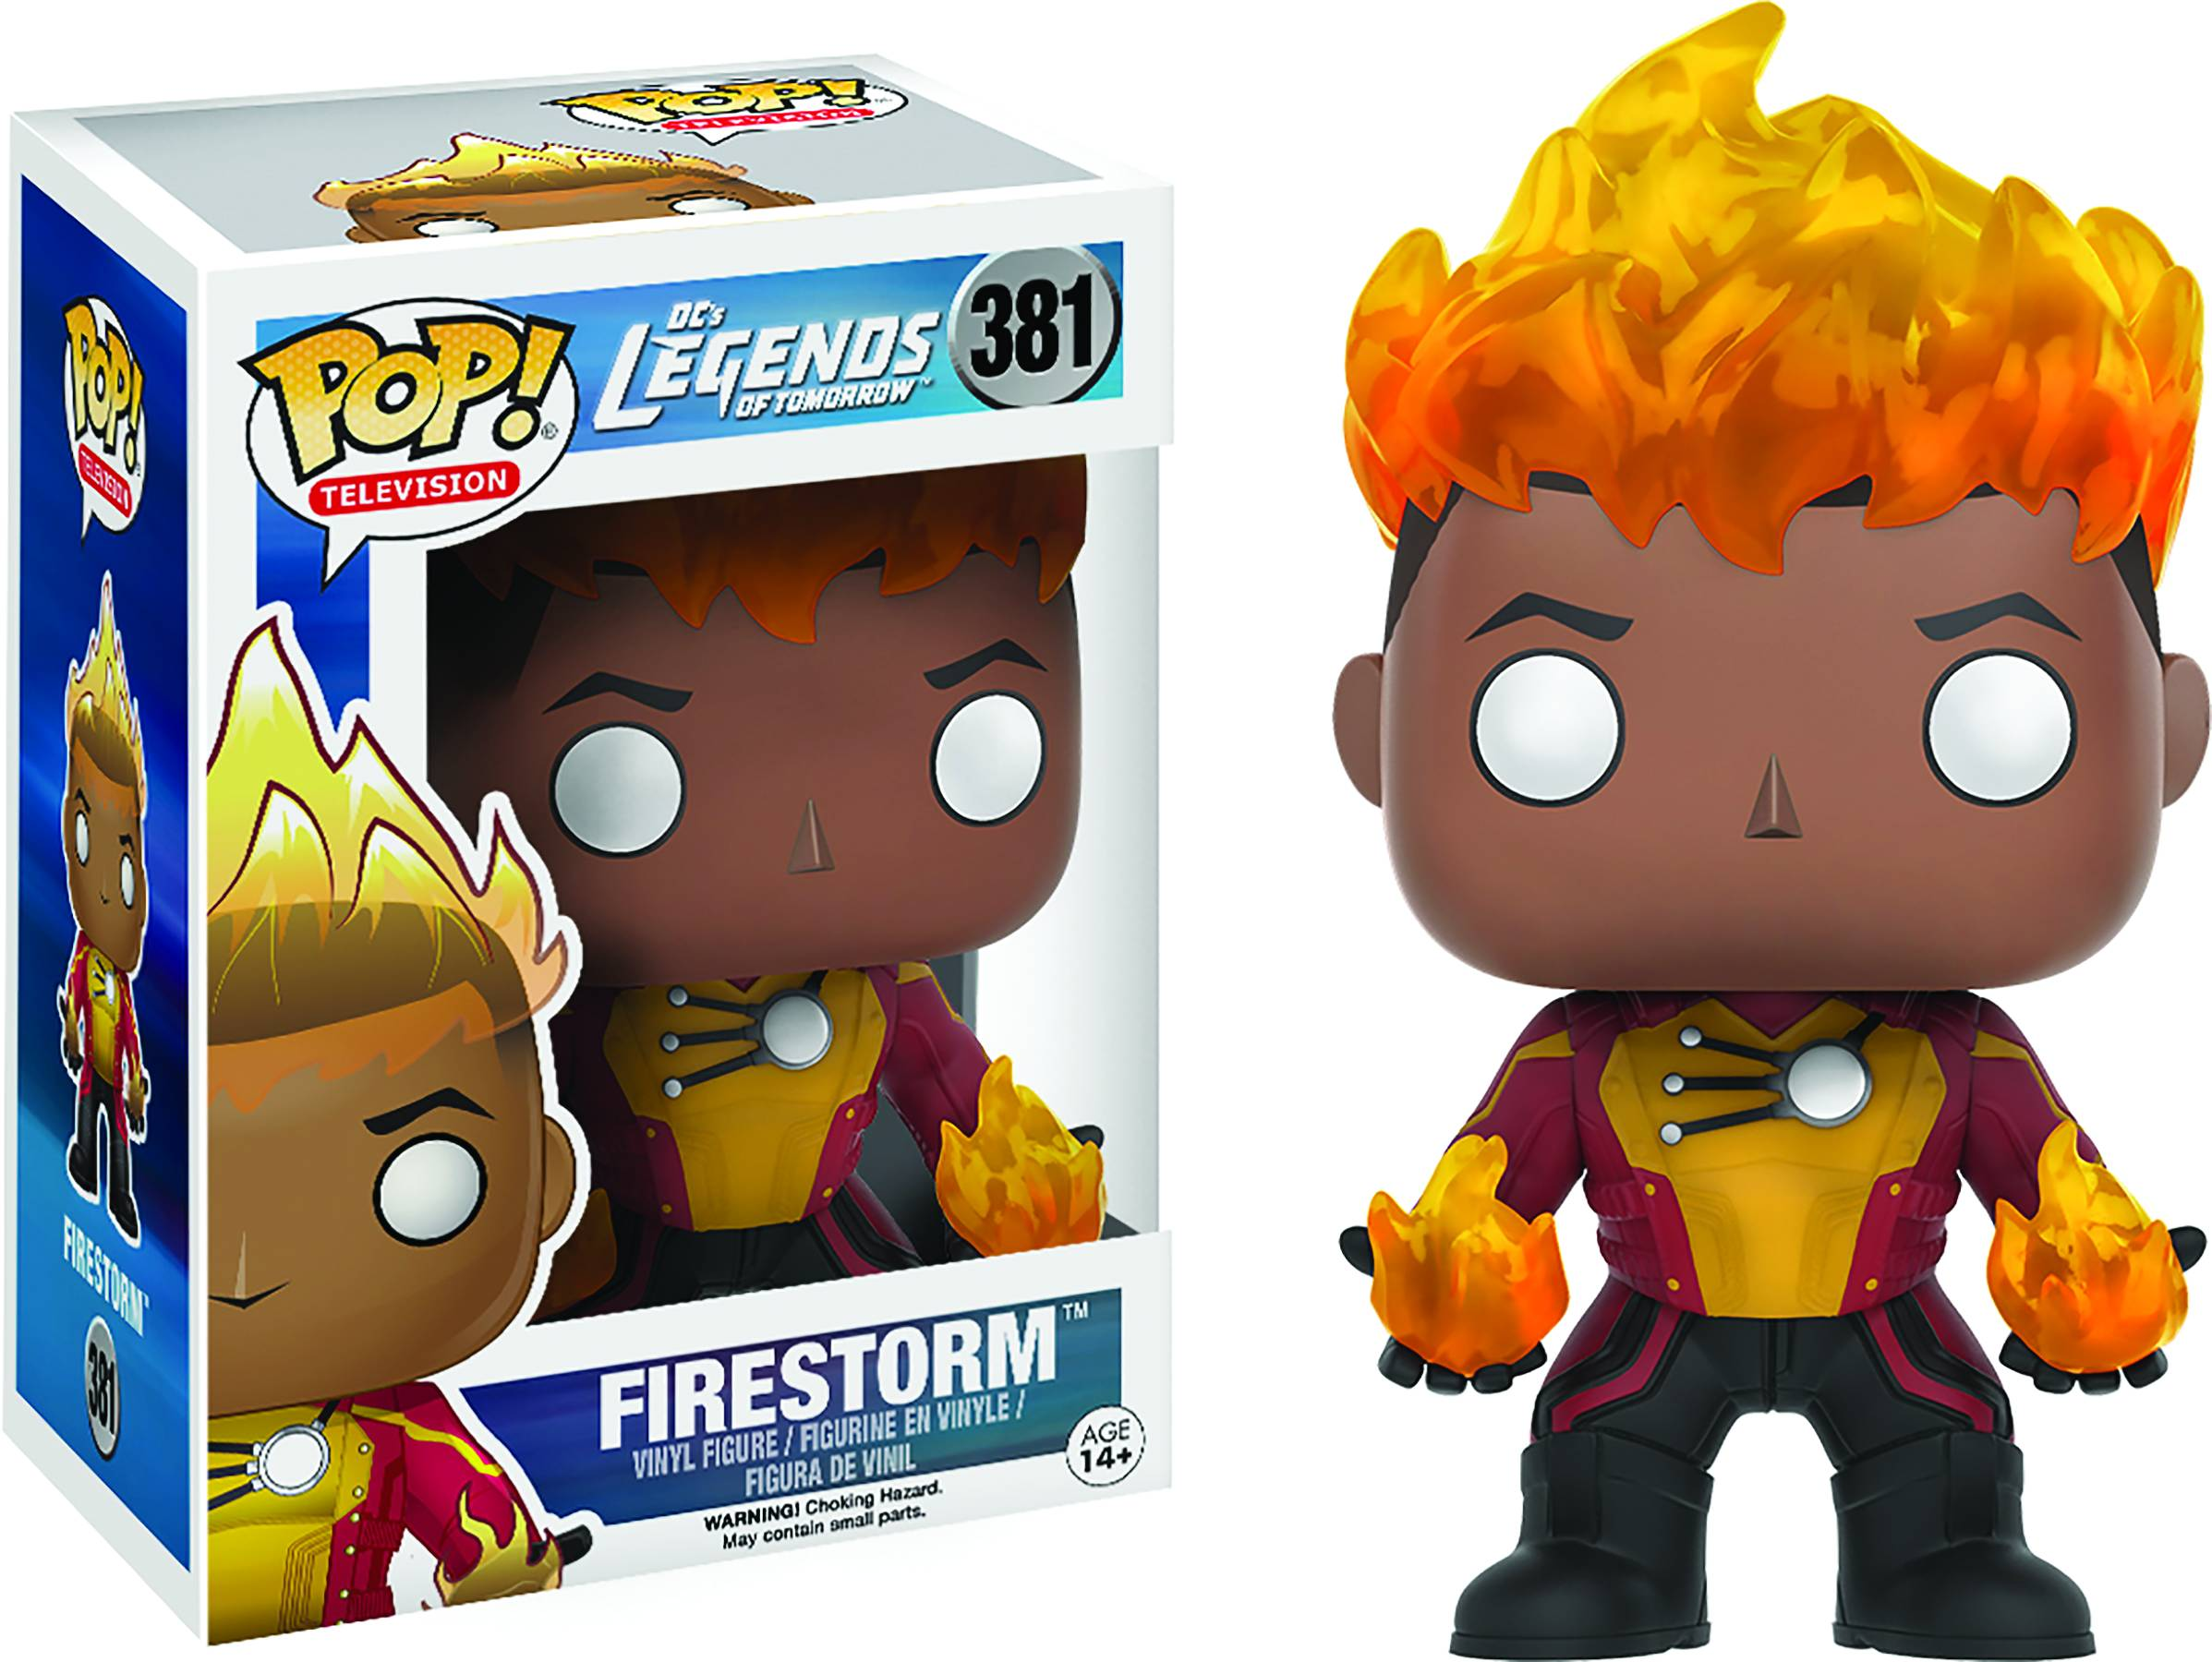 POP LEGENDS OF TOMORROW FIRESTORM VINYL FIG